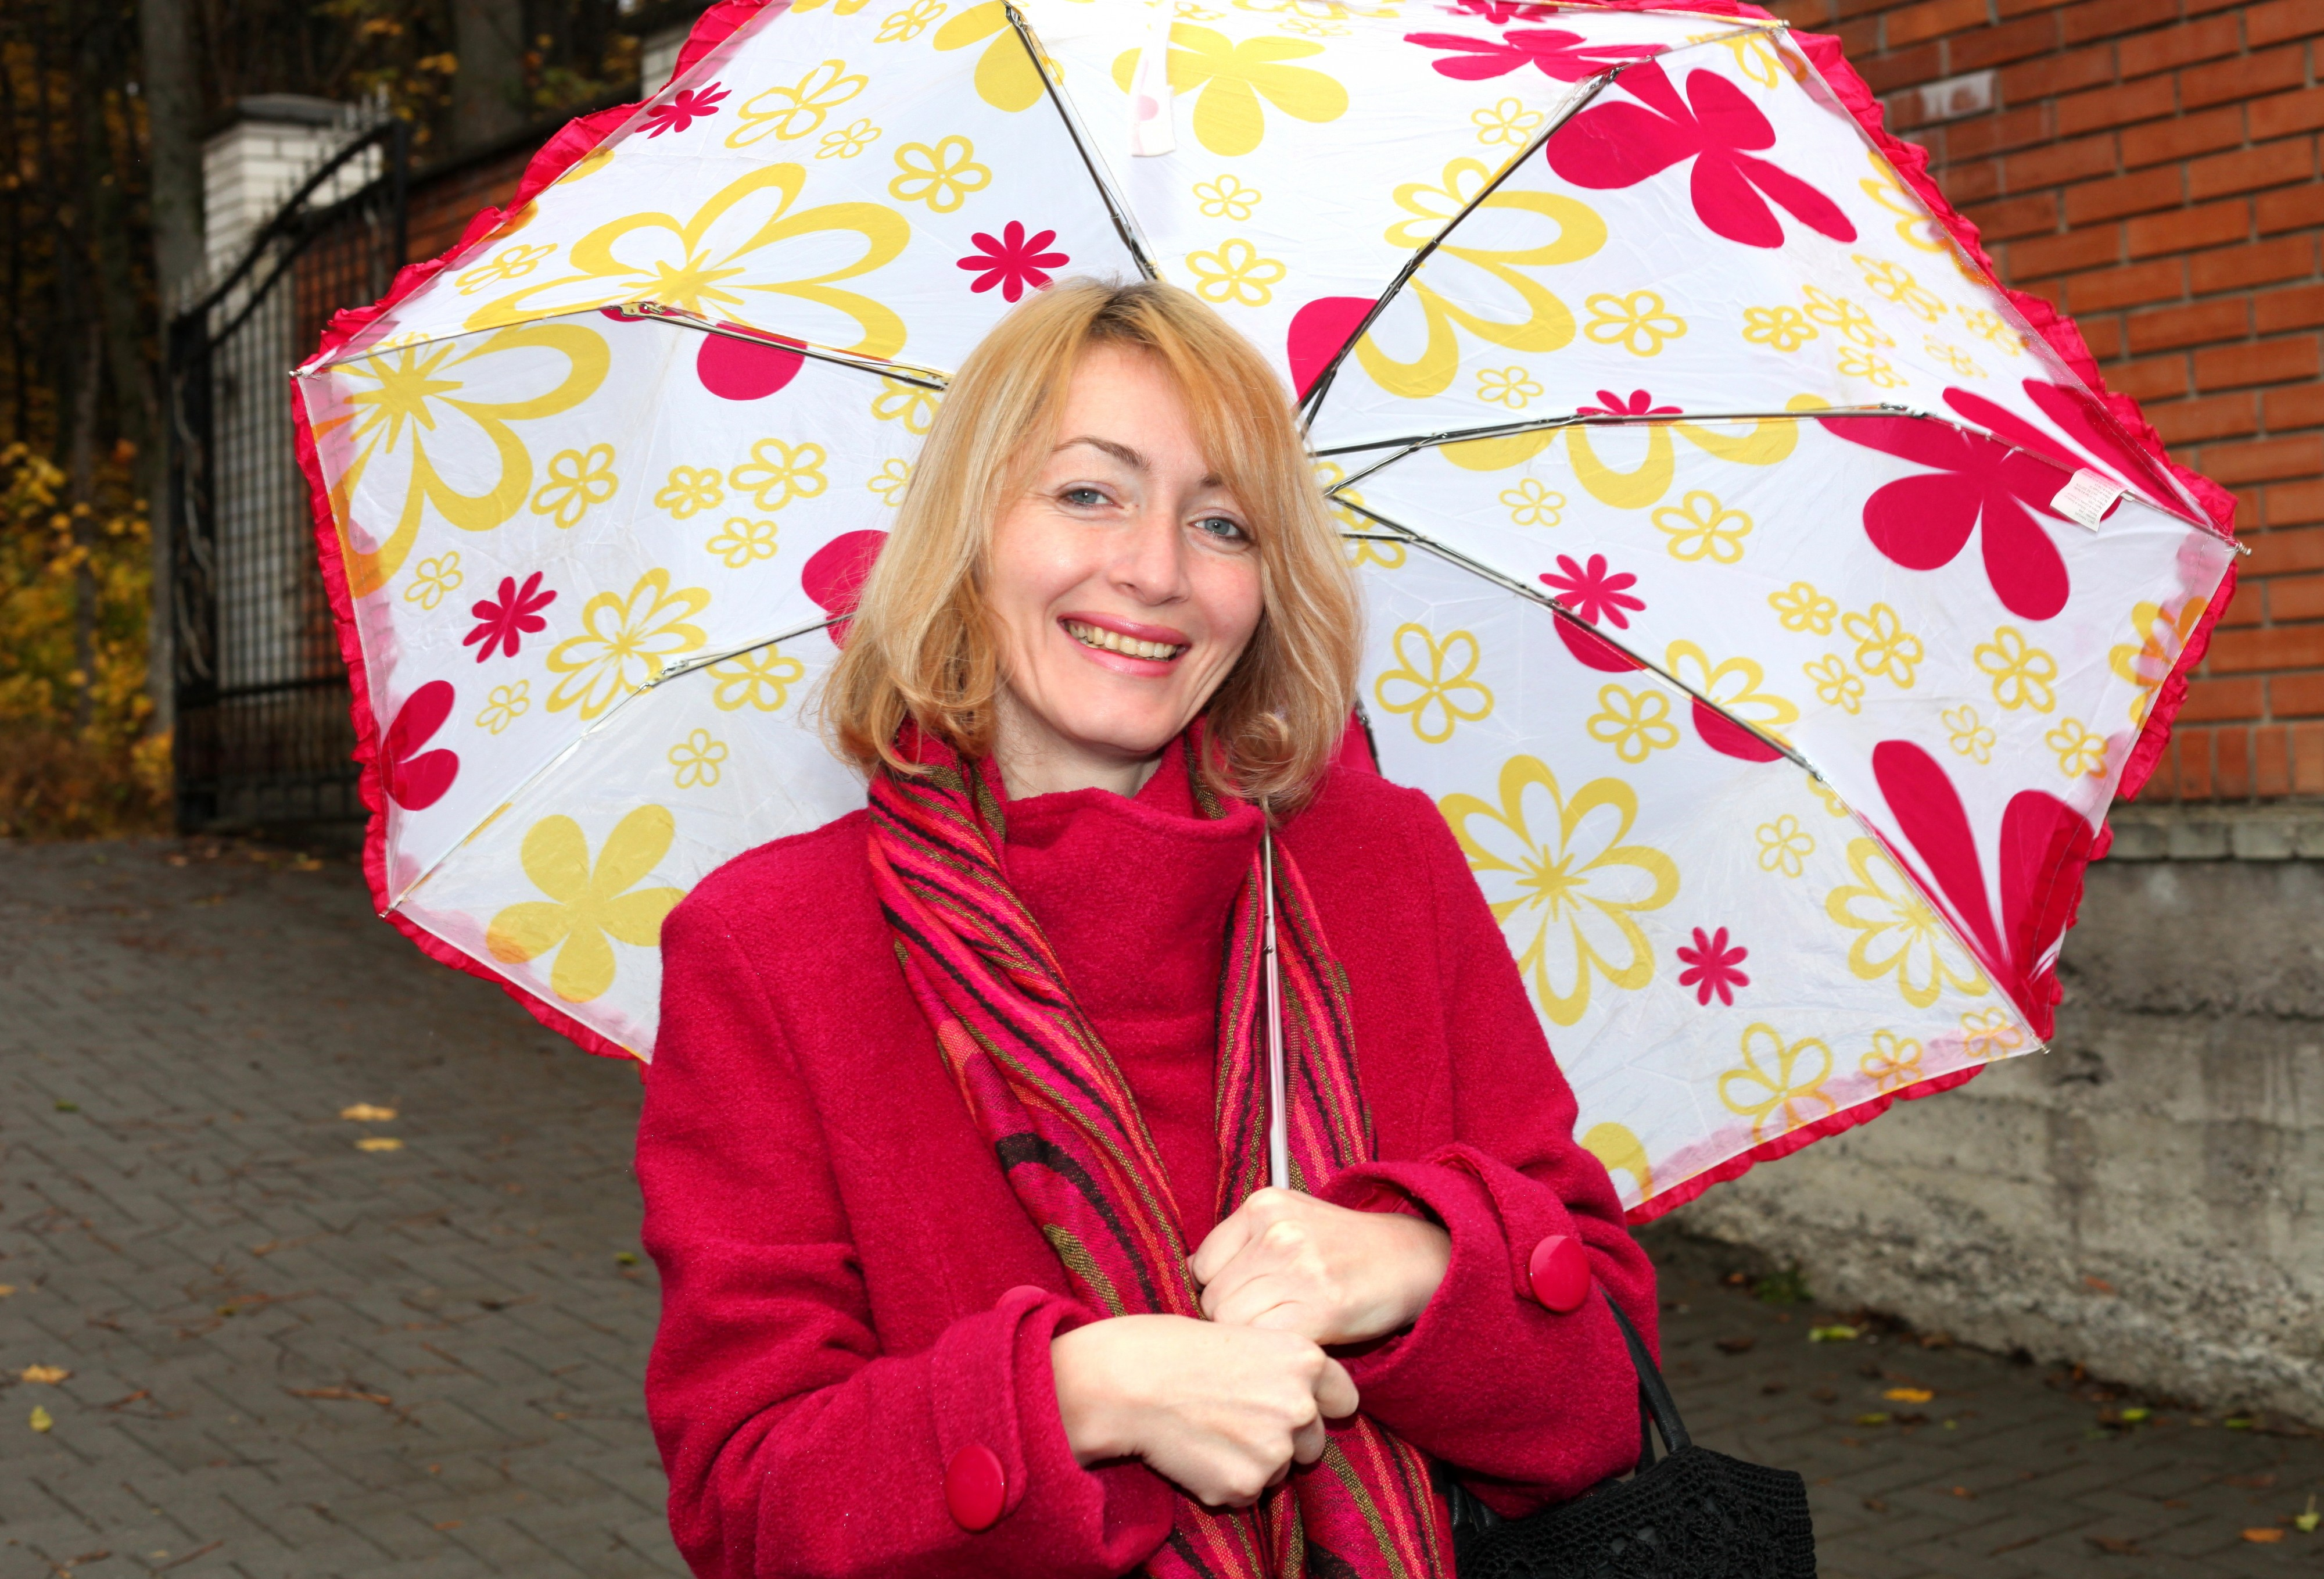 a beautiful Catholic woman with an umbrella, picture 1